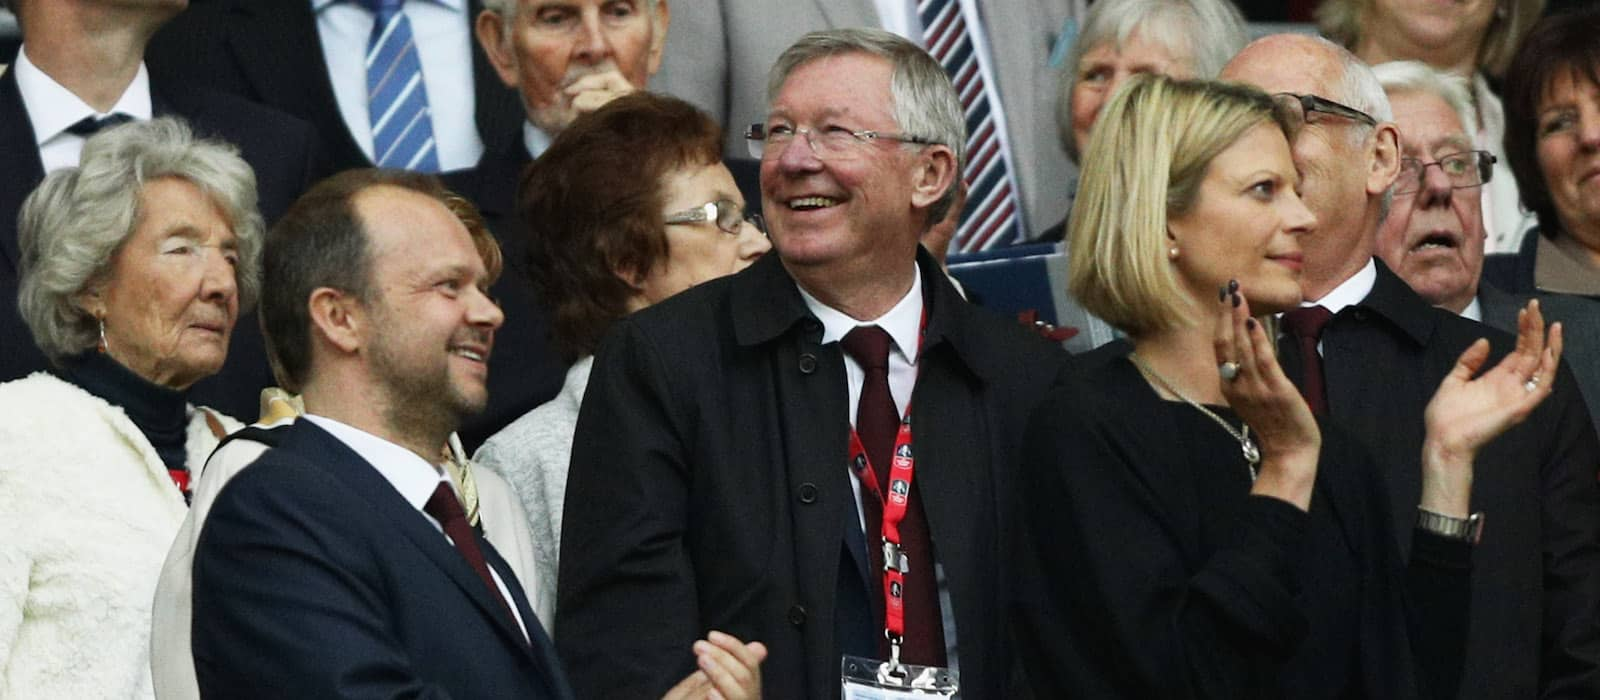 Sir Alex Ferguson reacts to narrow win at Old Trafford vs Bournemouth